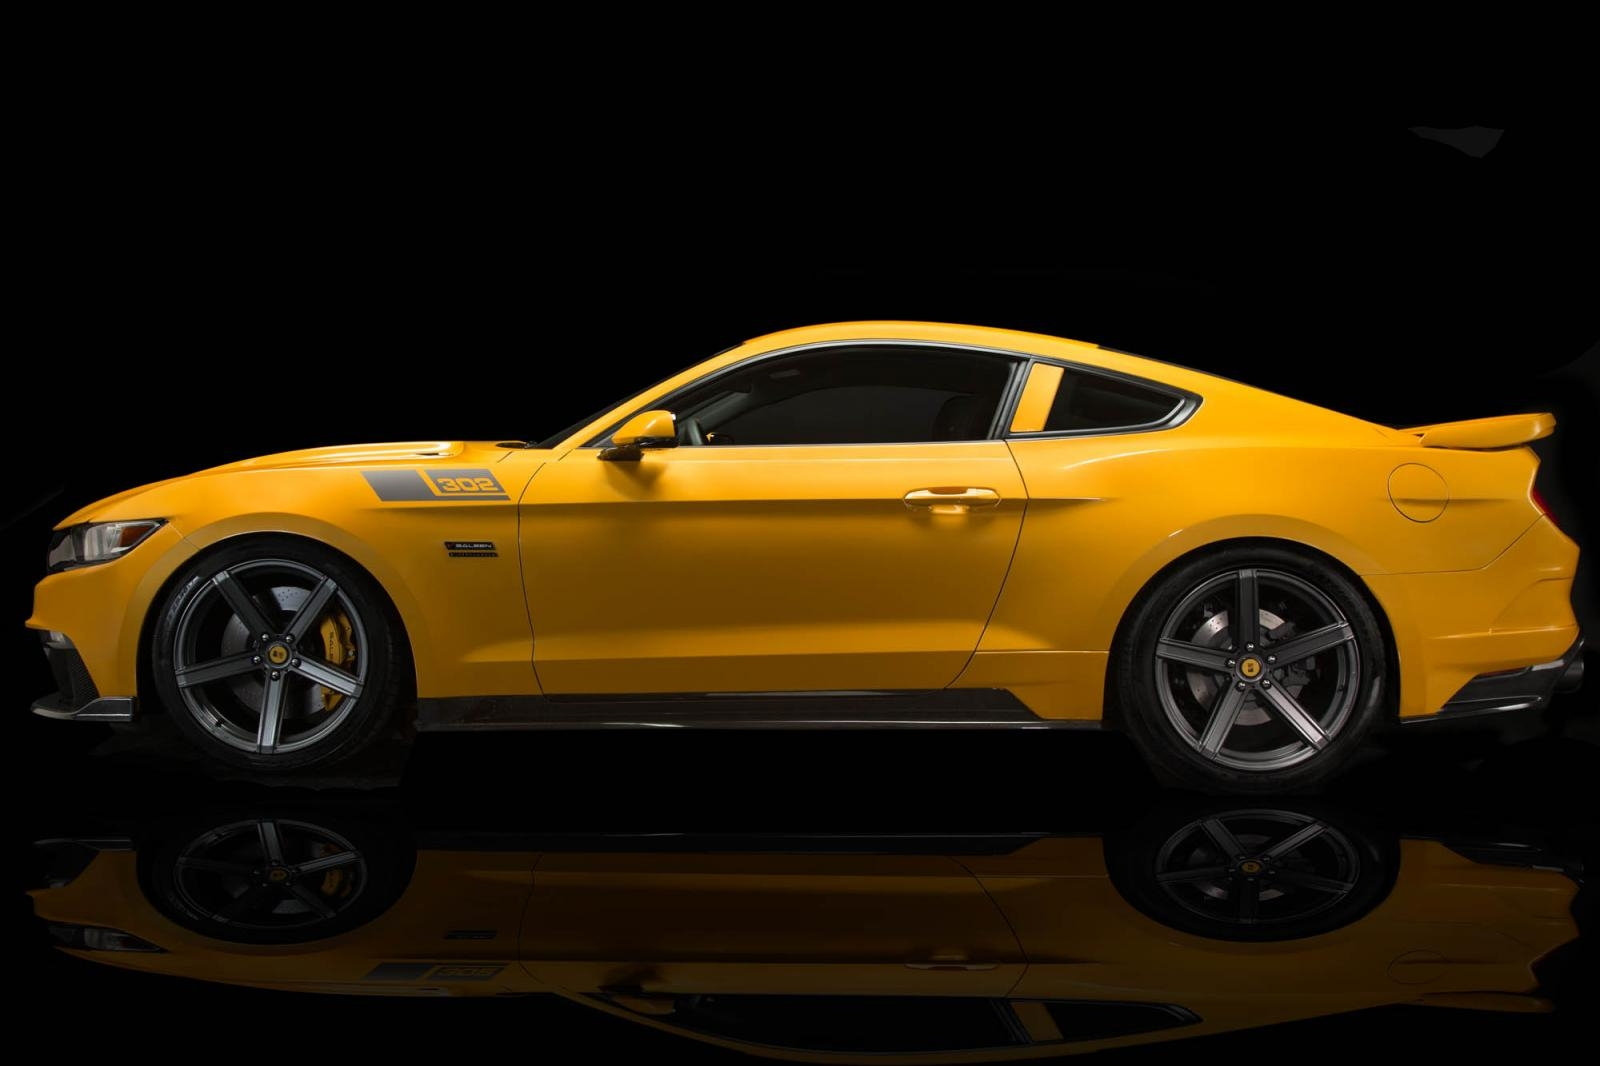 Saleen S302 Black Label Mustang 001